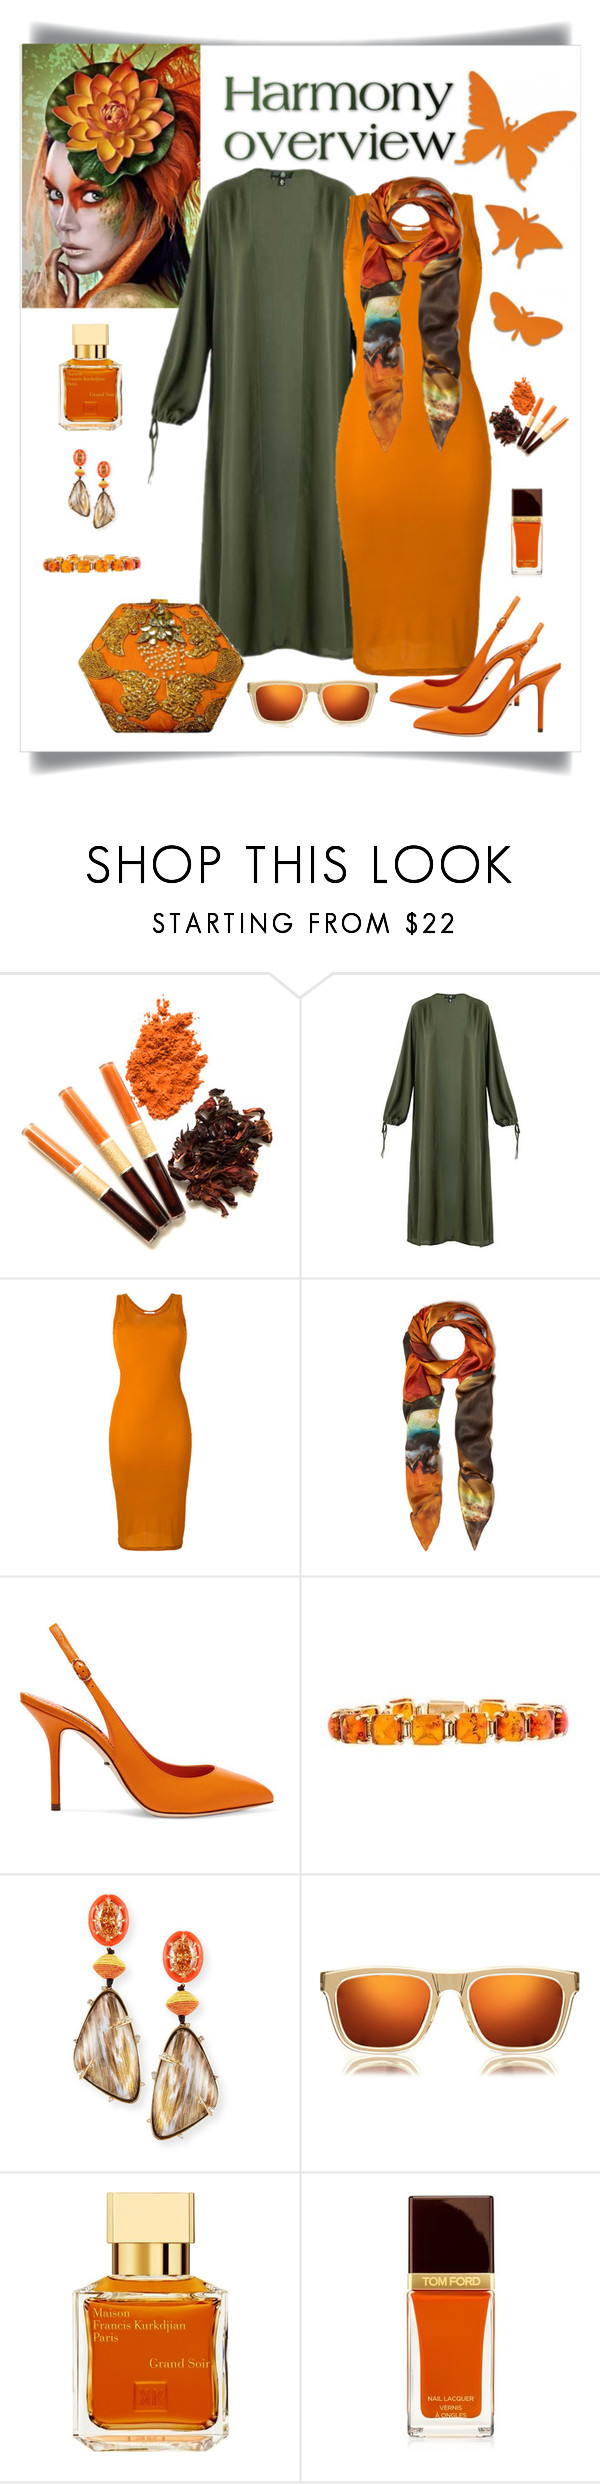 """""""Givenchy Midi Tank Dress Look"""" by romaboots-1 ❤ liked on Polyvore featuring Givenchy, Weston, Dolce&Gabbana, Alexis Bittar, Karen Walker, Maison Francis Kurkdjian and Tom Ford"""